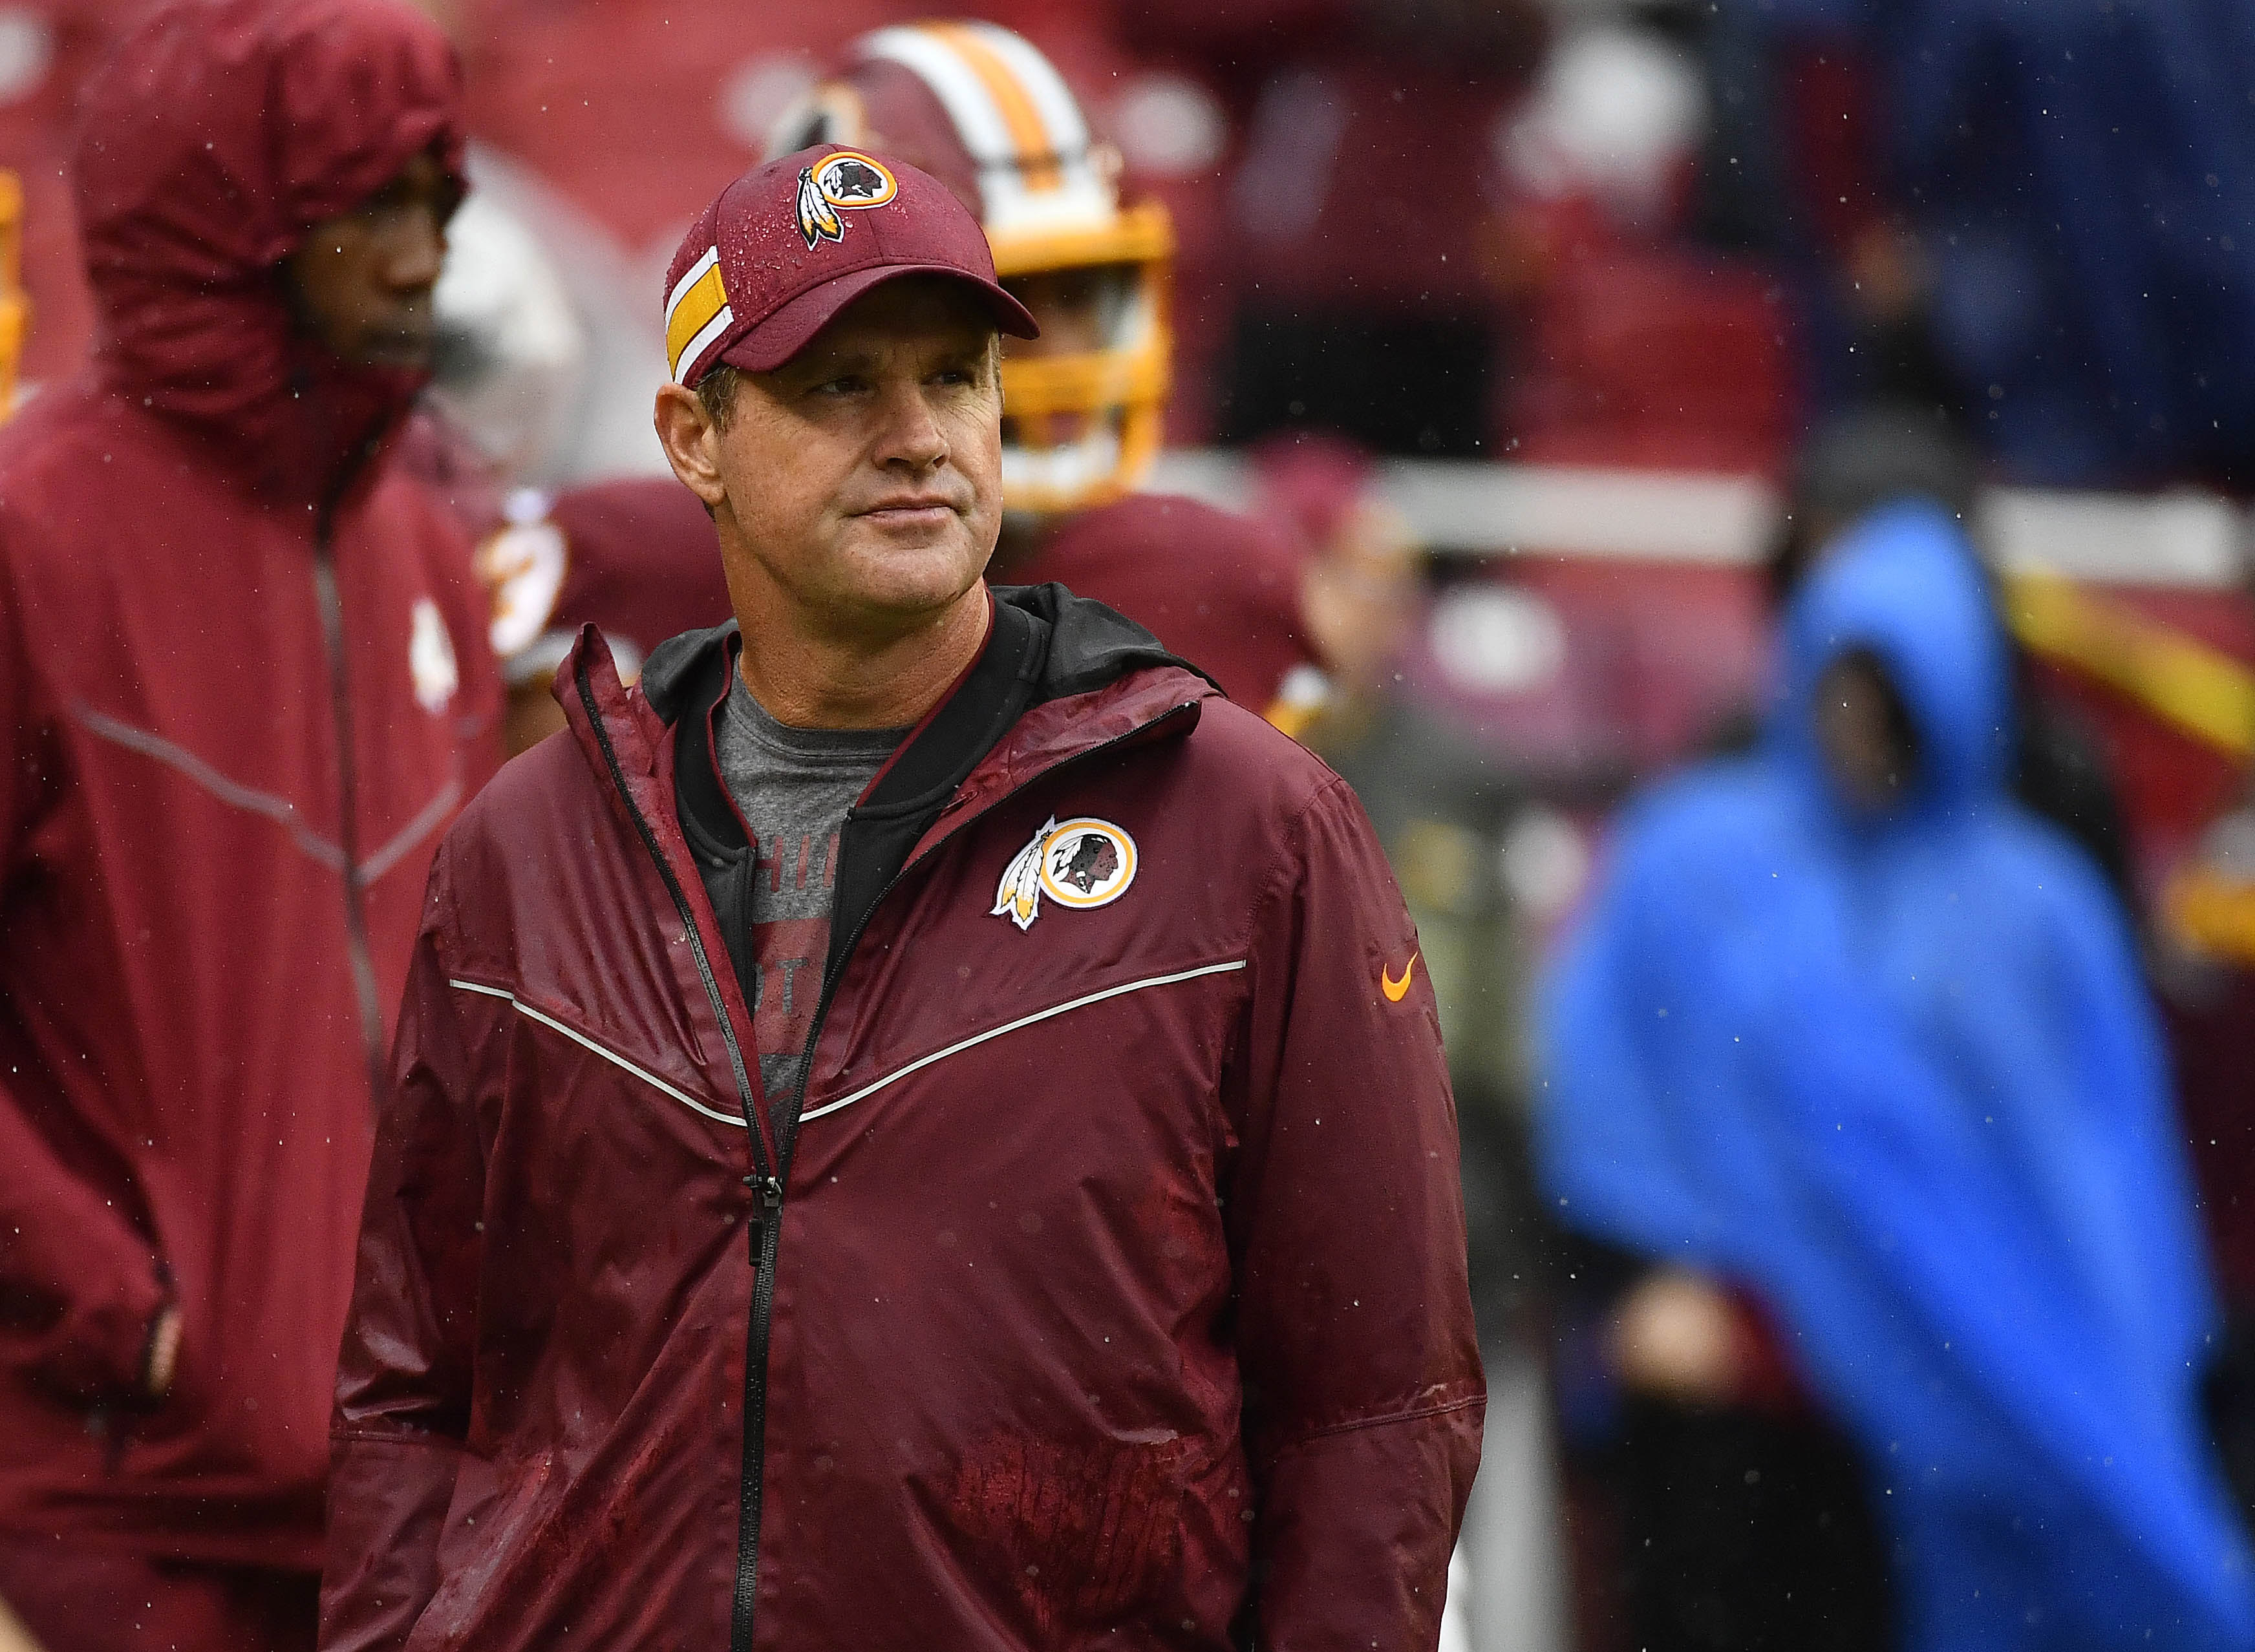 Jay Gruden is unaware of the Redskins' plans moving forward